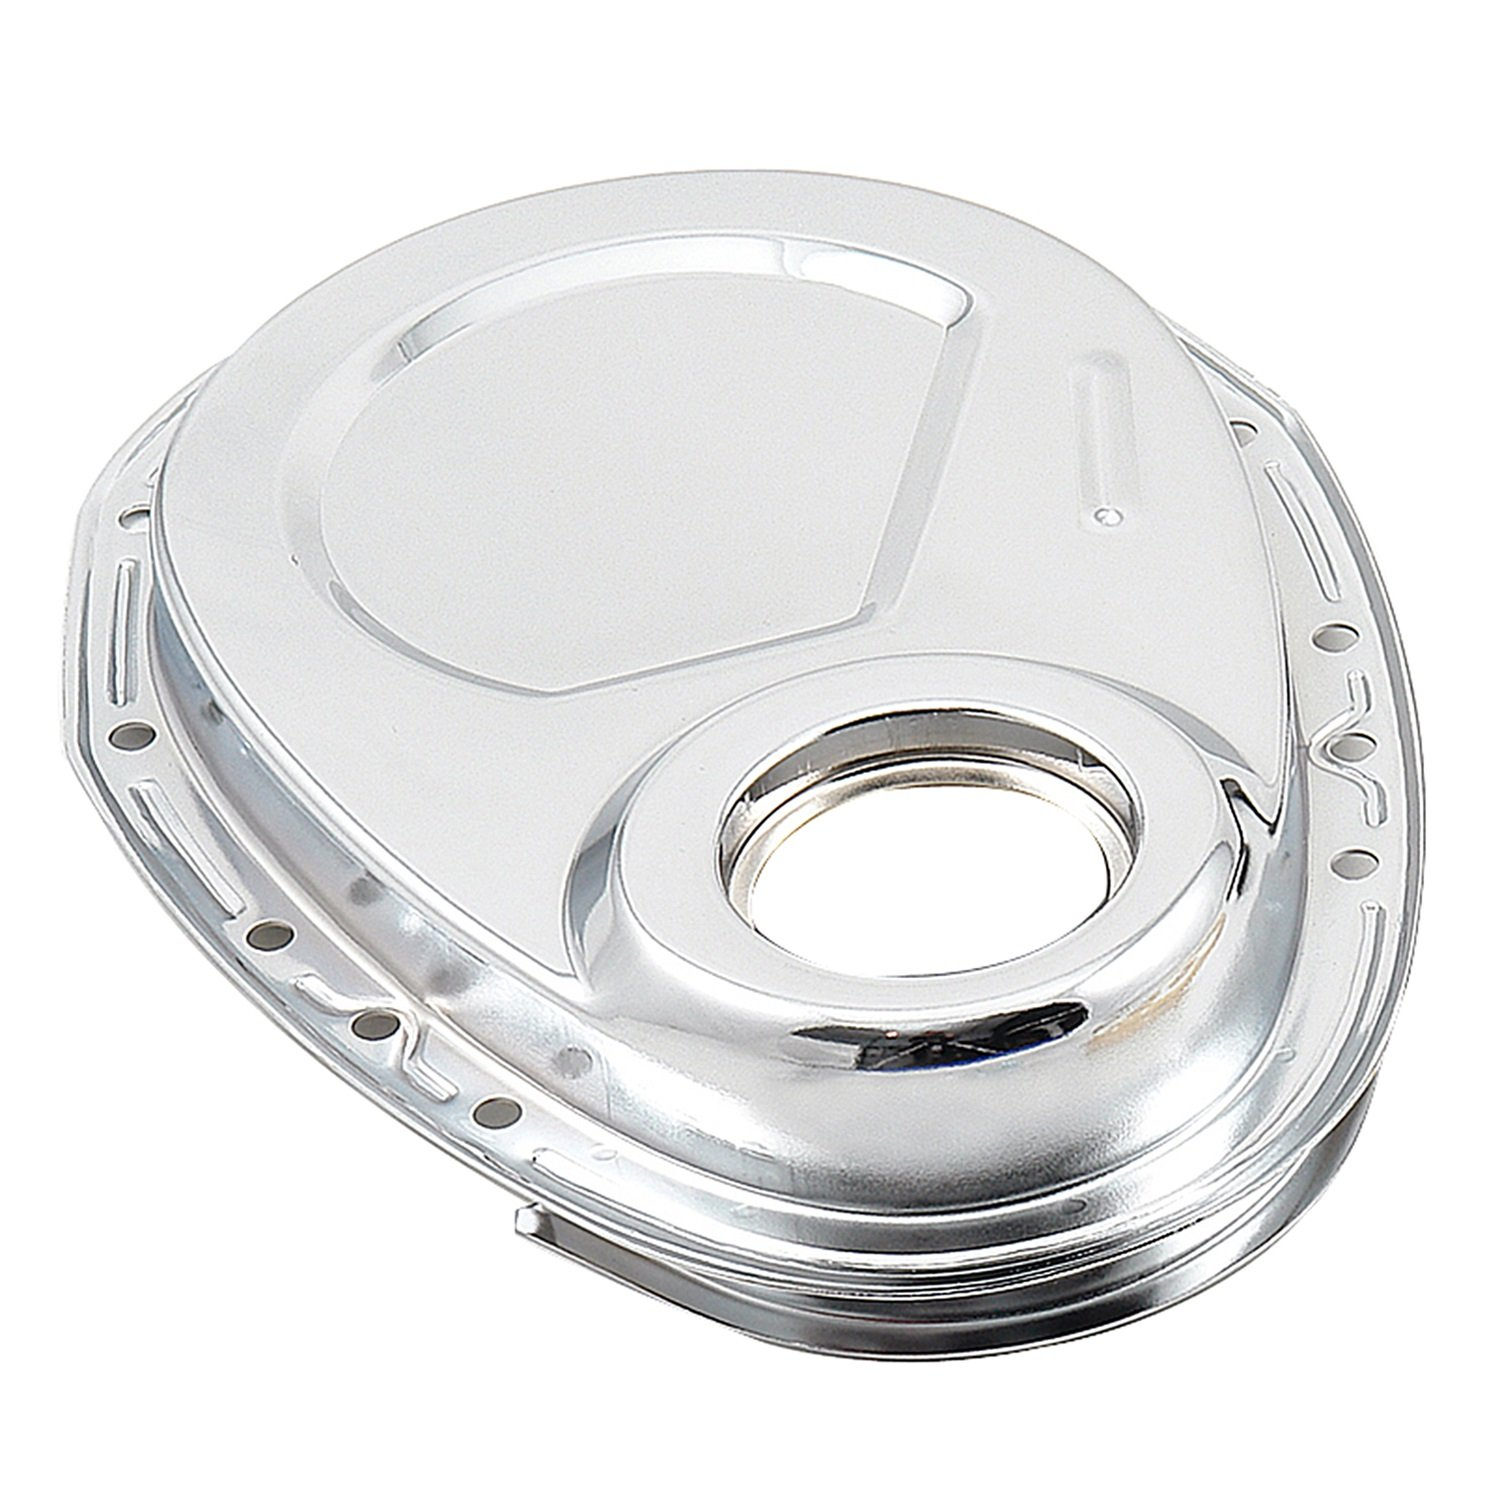 Mr. Gasket 4595 Chrome Plated Timing Cover Only